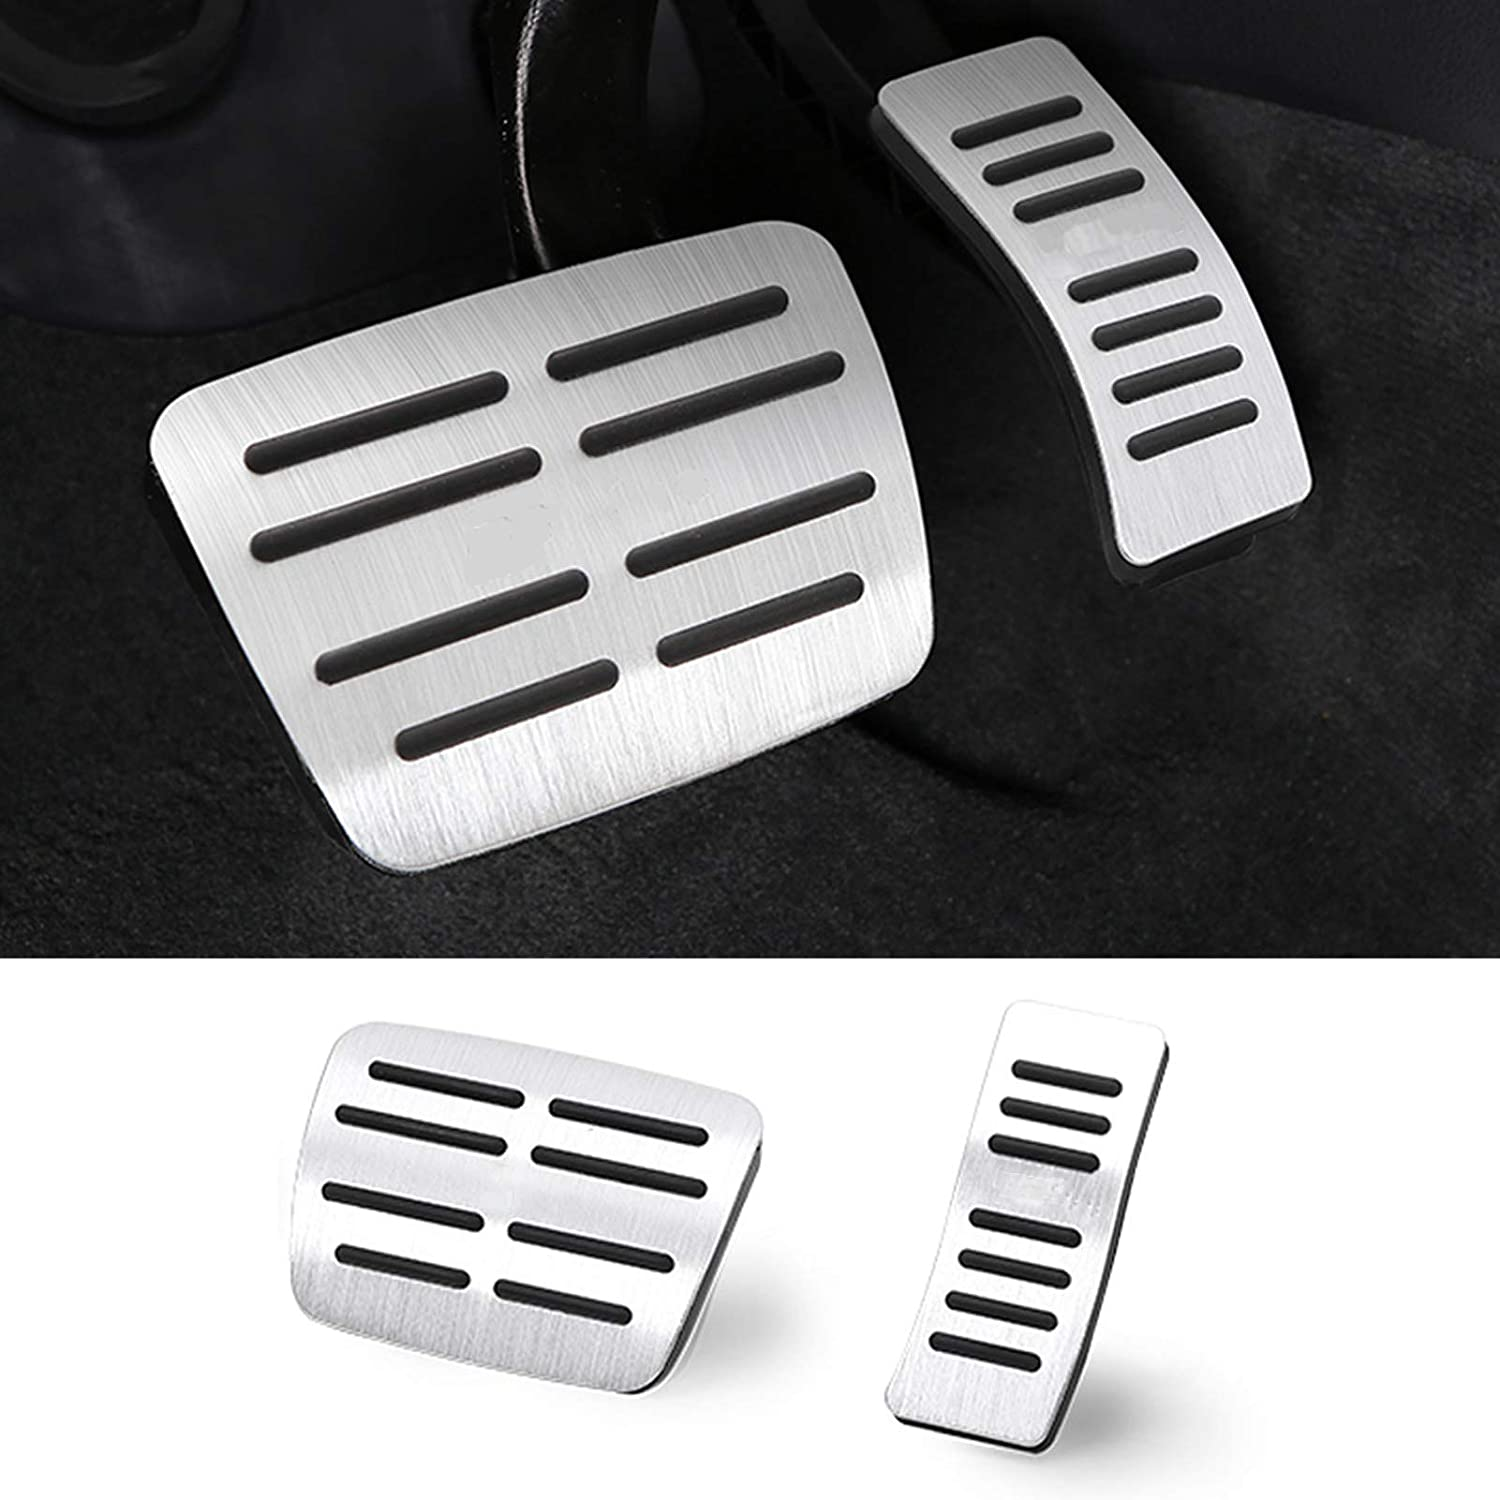 TTCR-II Ranking TOP11 Pedal Covers Compatible with Audi A3 Q3 Q A4 A5 A7 A8 Surprise price A6